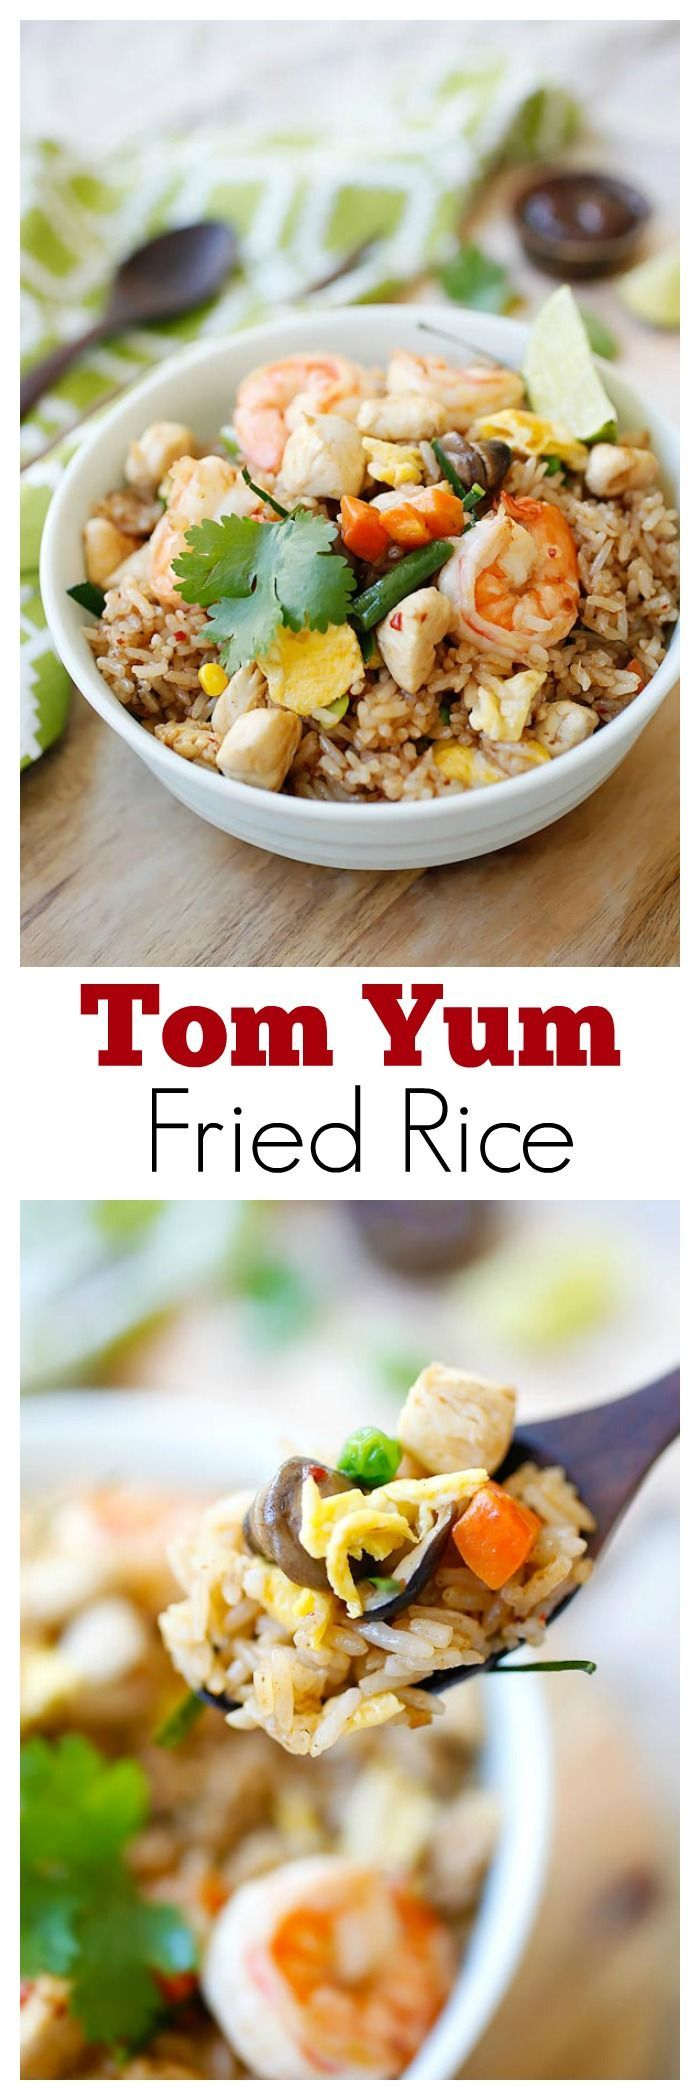 Tom Yum Fried Rice – your favorite Thai Tom Yum Flavor in a fried rice dish. The most amazing fried rice with exotic flavors that you can't stop eating | http://rasamalaysia.com